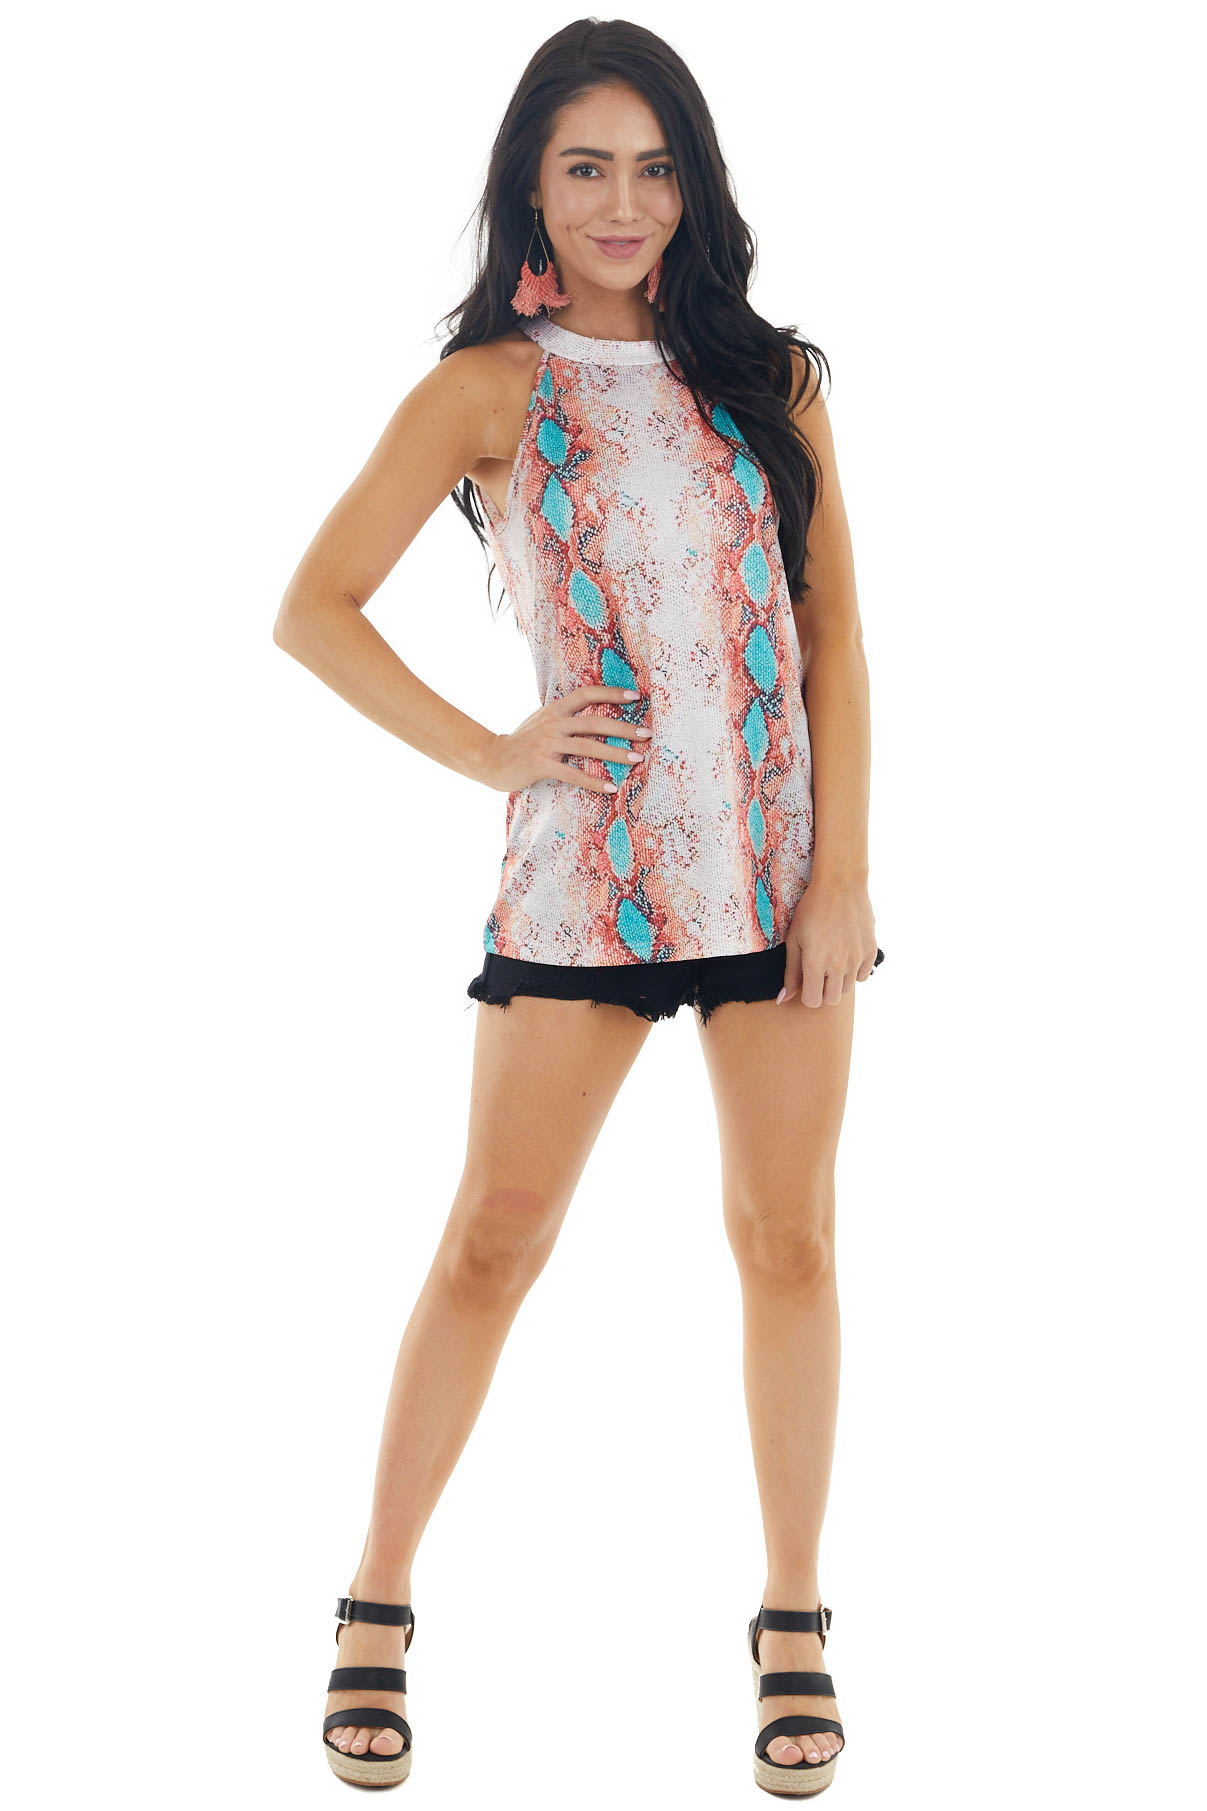 Coral and Teal Snakeskin Sleeveless Top with Keyhole Detail